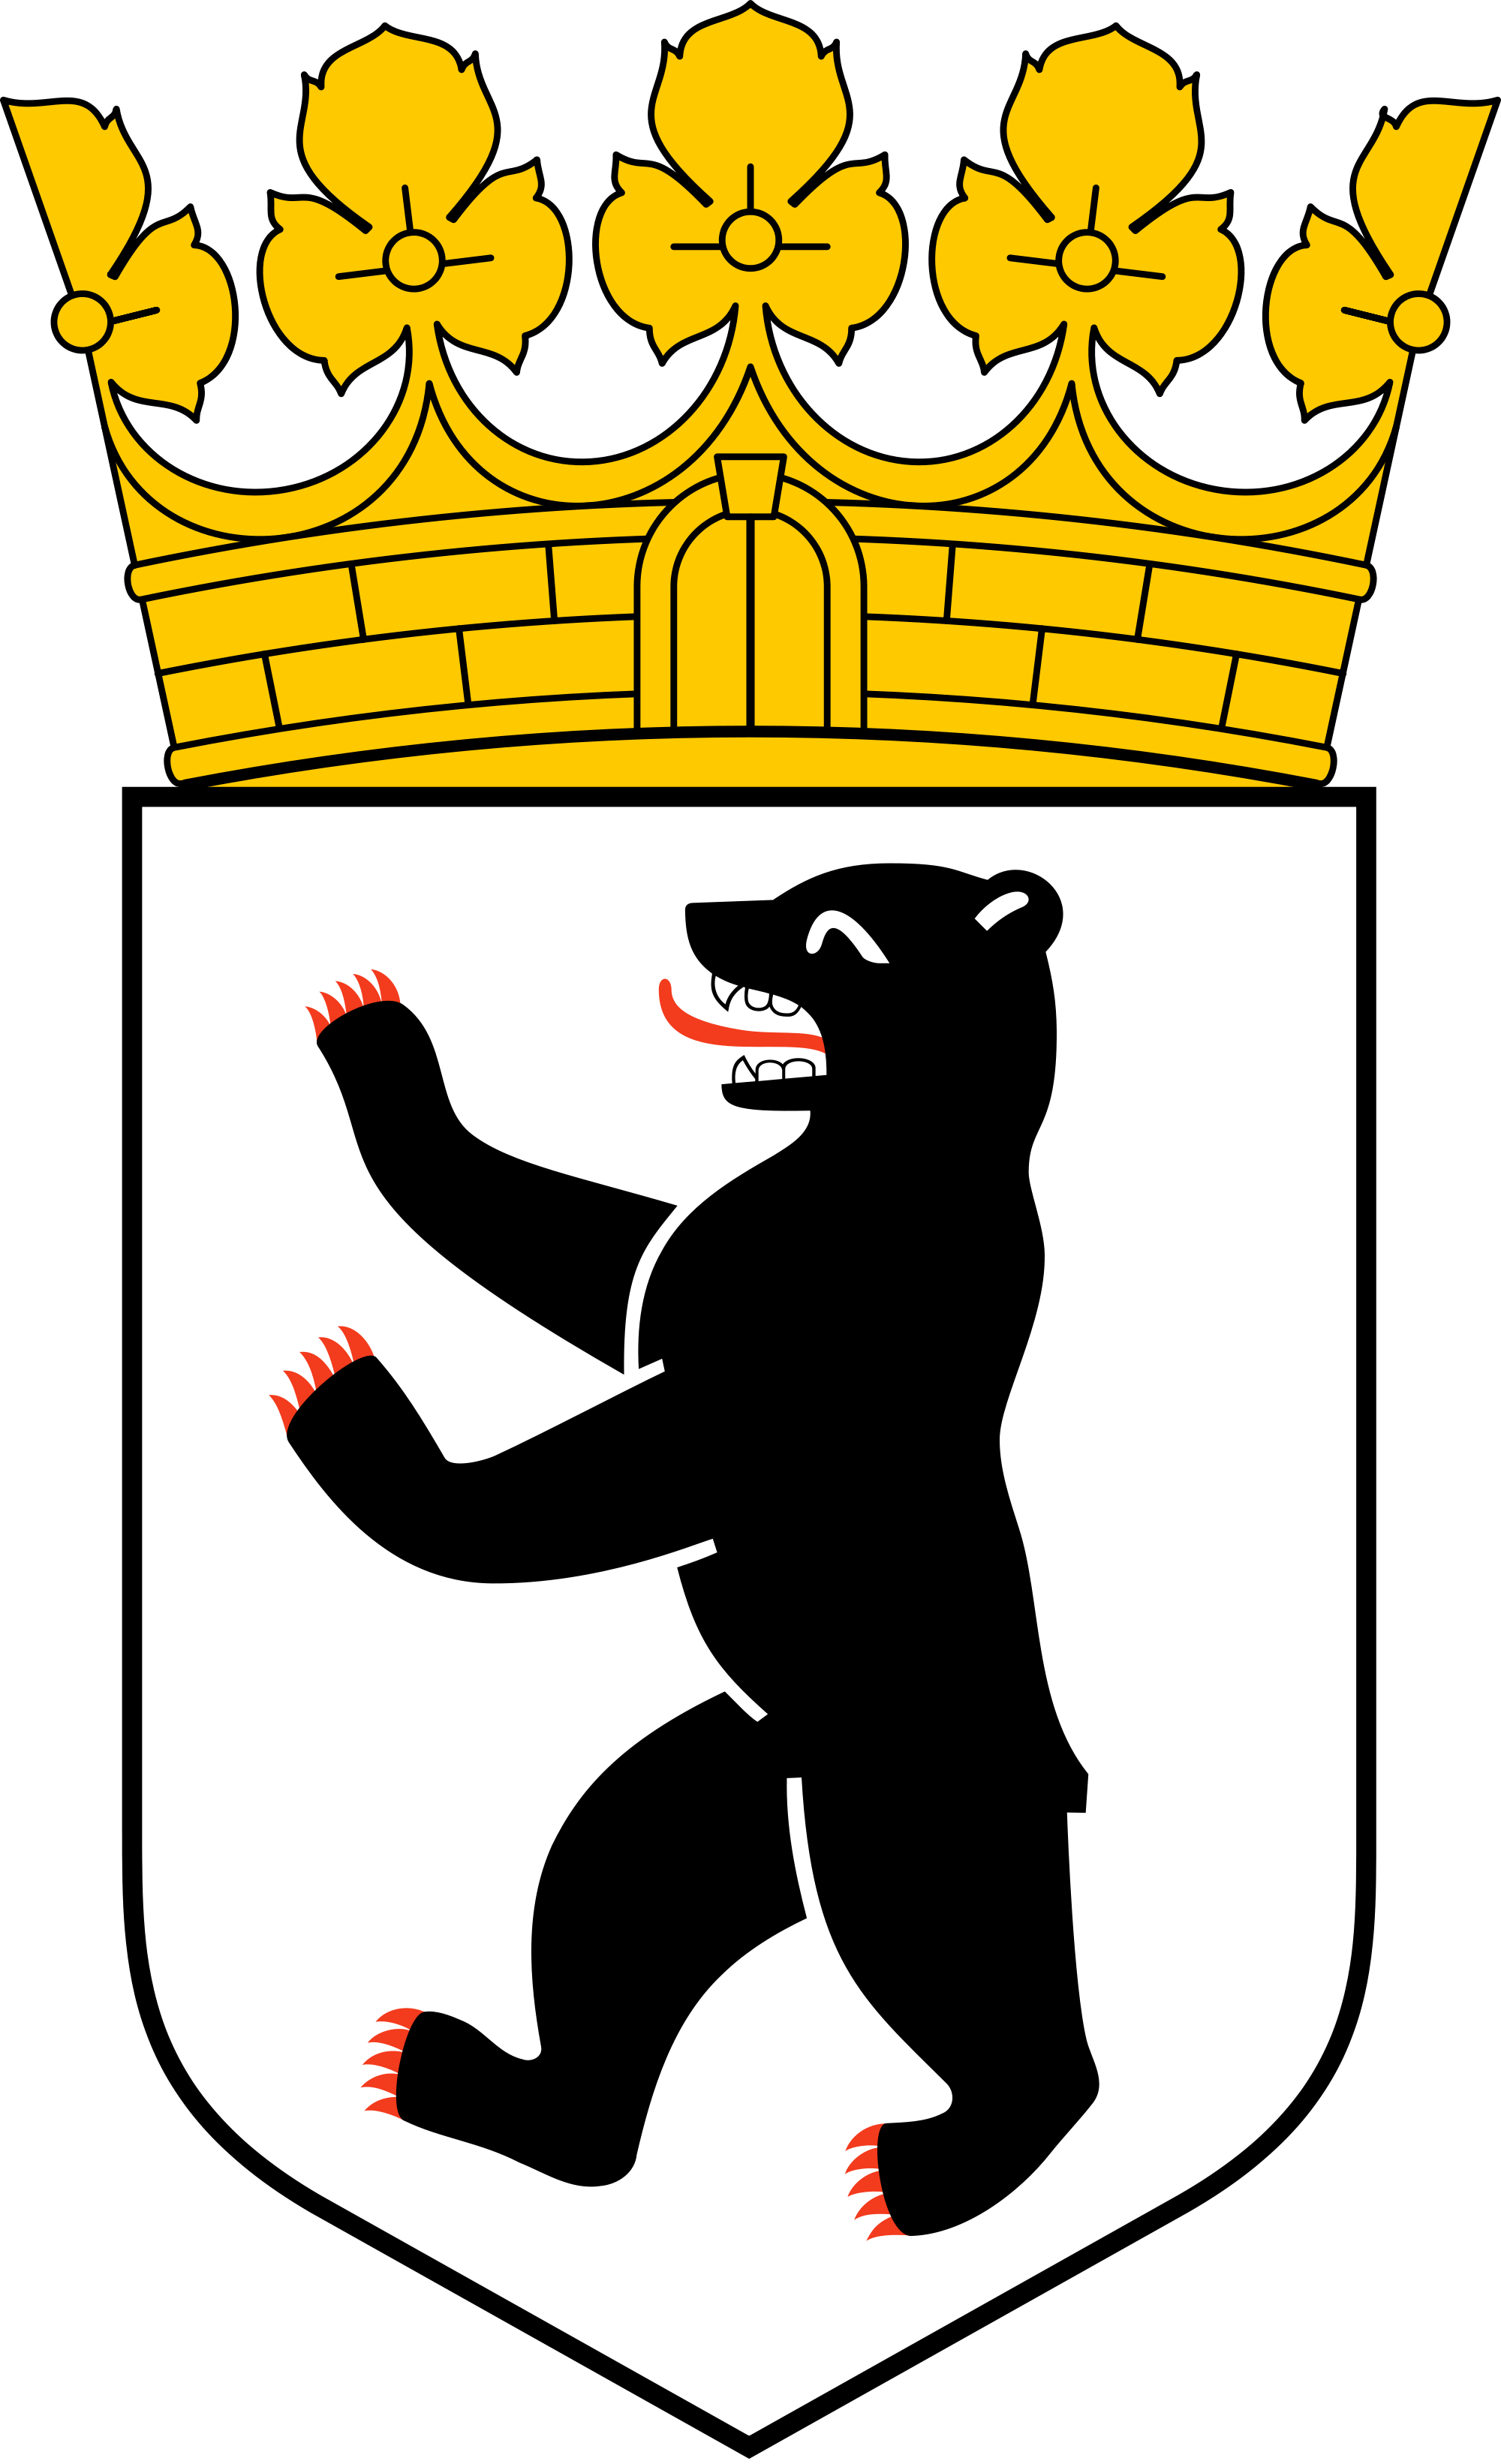 File:Coat of arms of Berlin.svg.